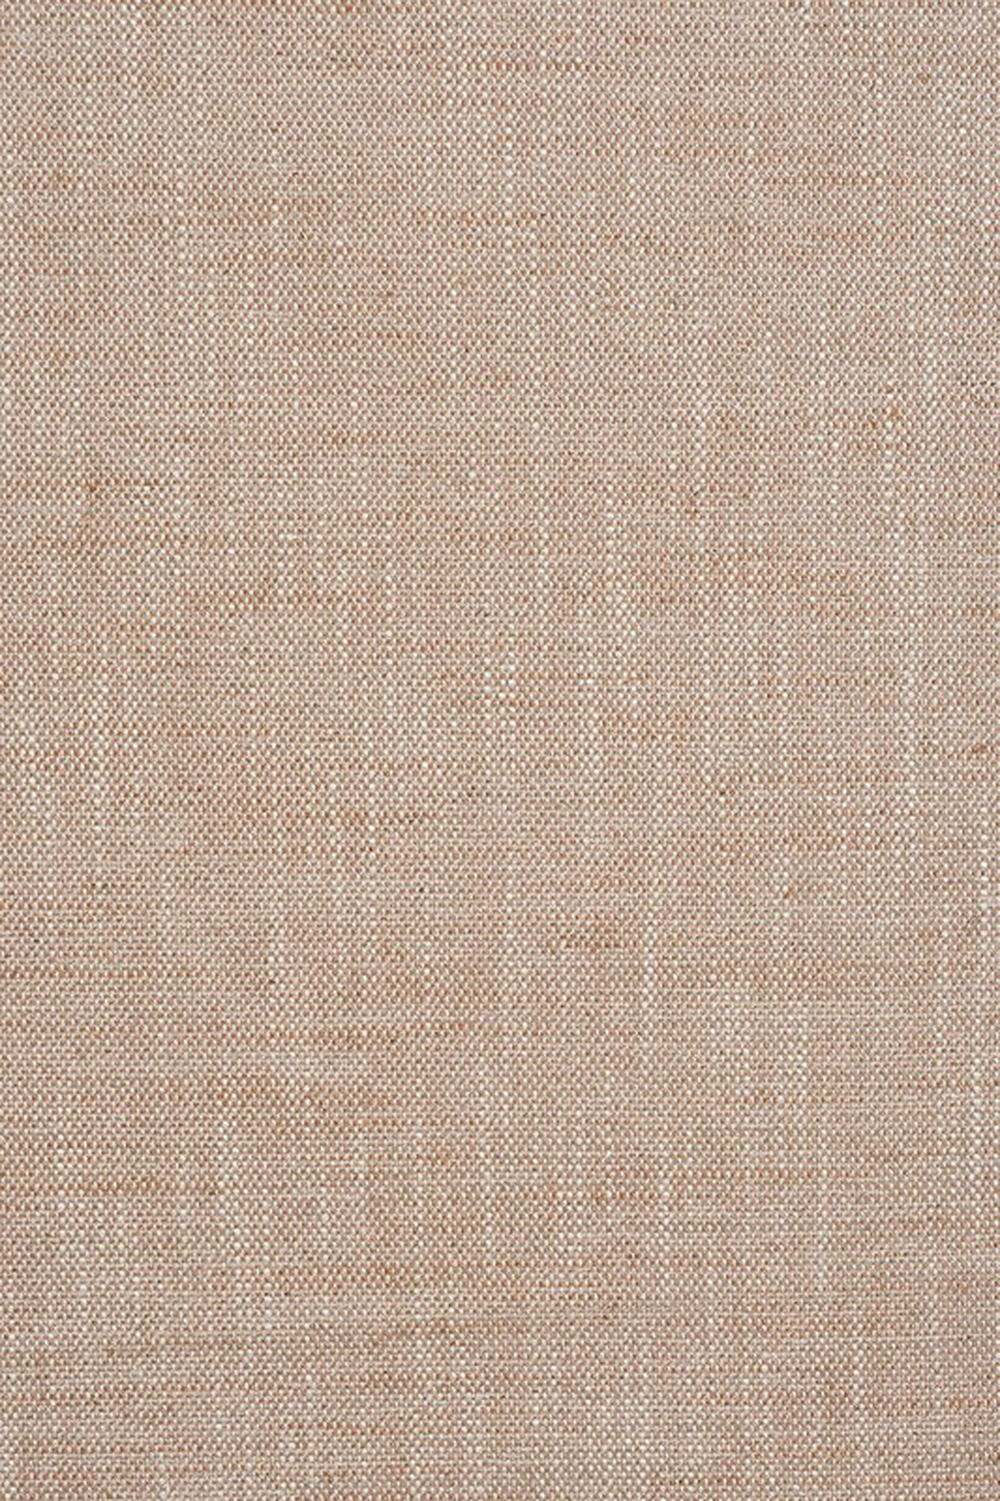 Photo of the fabric Sahel Blush swatch by Mokum. Use for Upholstery Heavy Duty, Accessory. Style of Plain, Texture